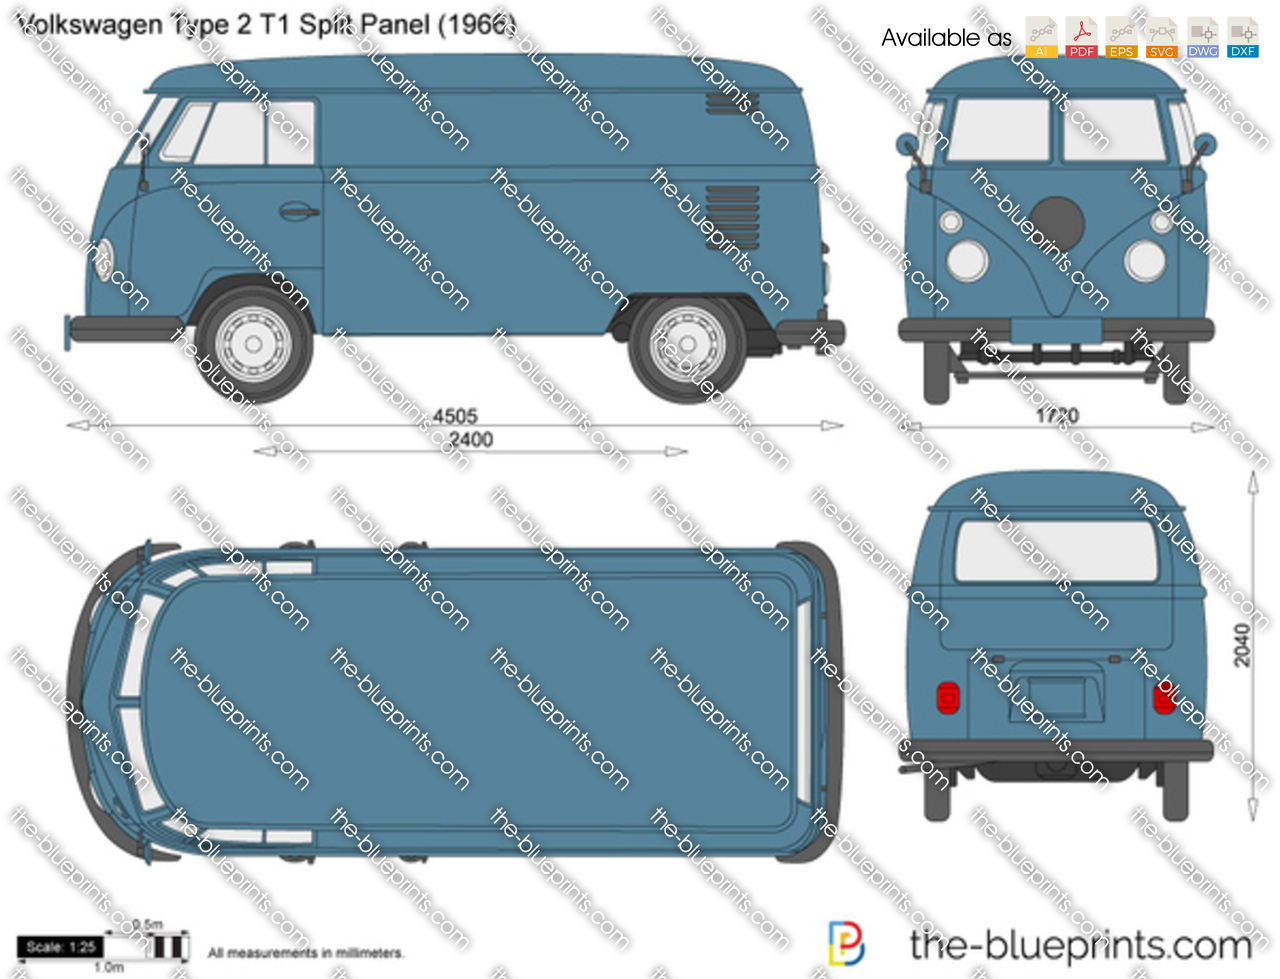 Volkswagen Type 2 T1 Split Panel 1964